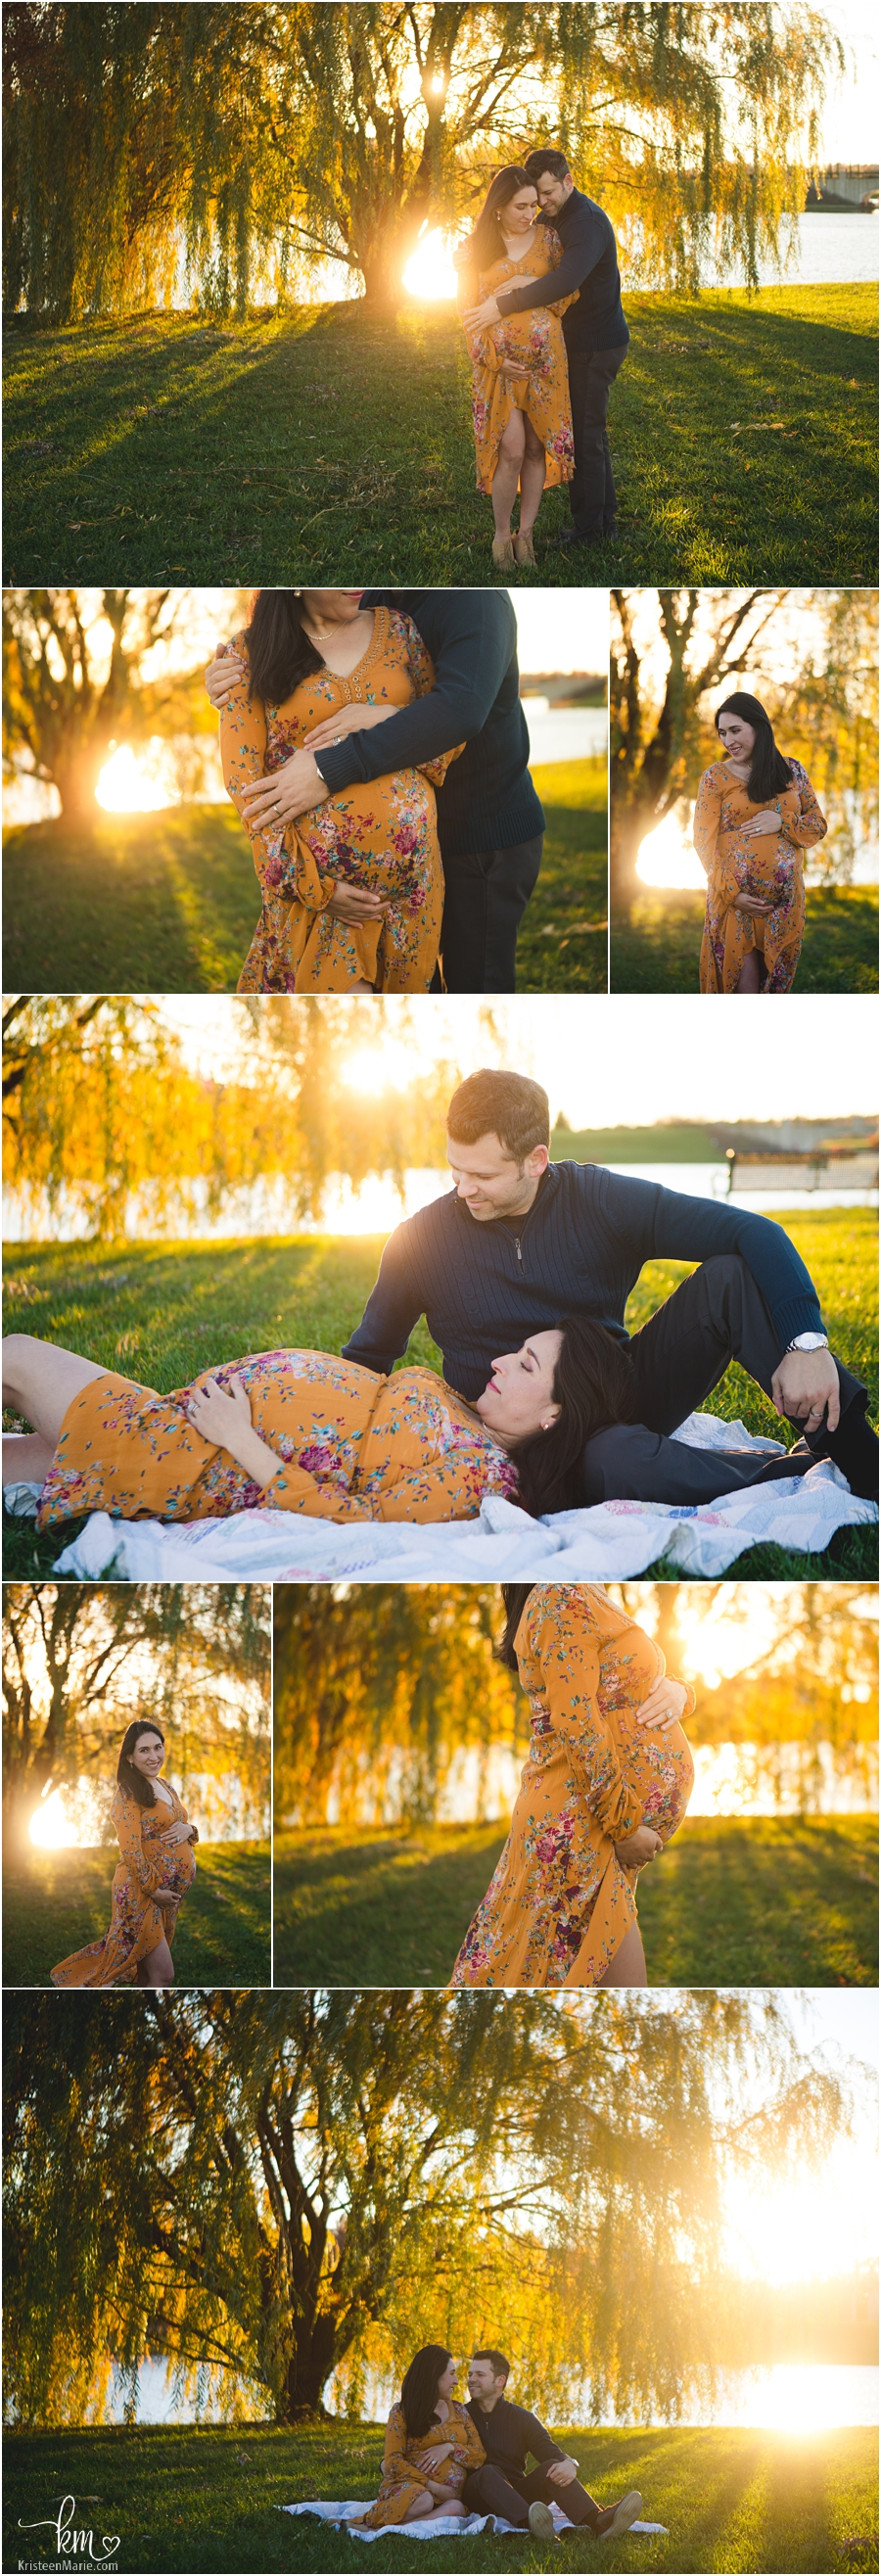 Golden hour sunset maternity photography - stunning